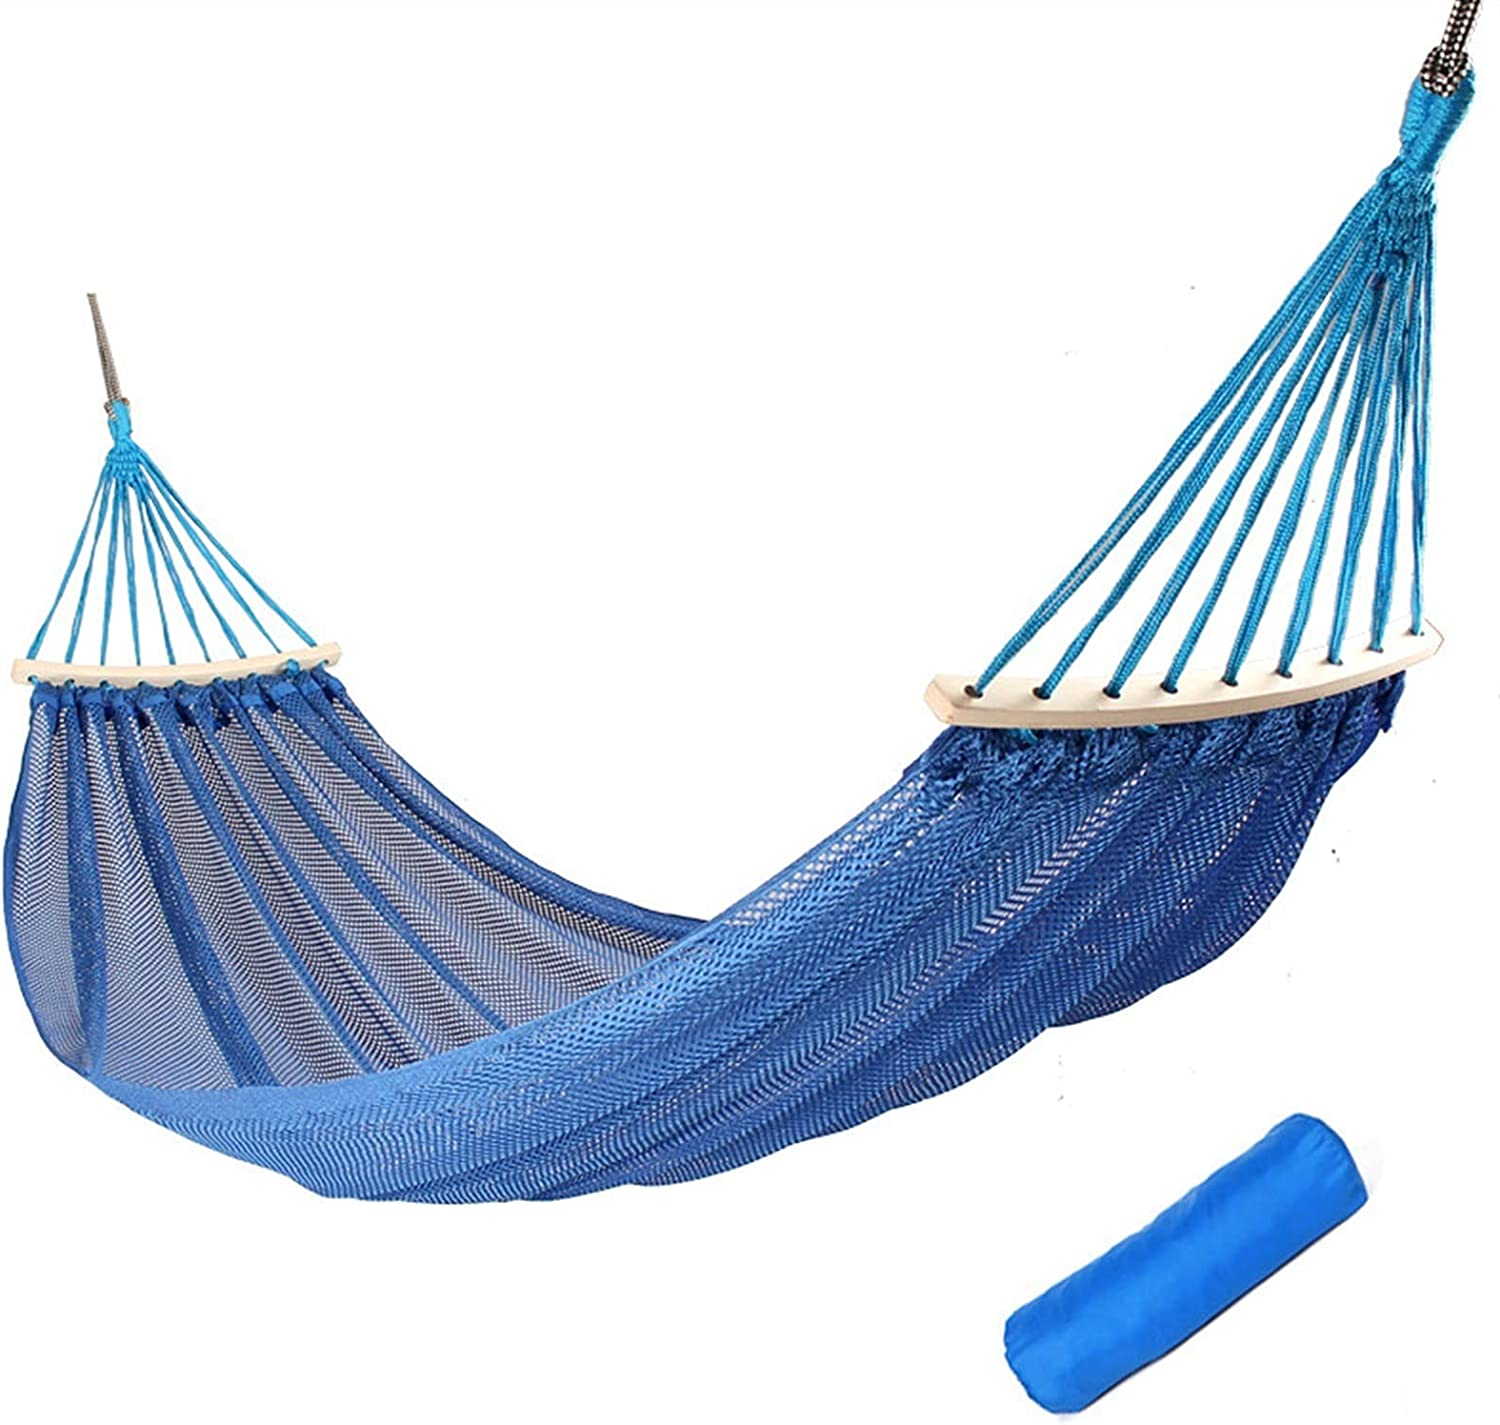 Don't miss the campaign ZWDP Double Hammock Super Light Camping Silk Breathable Max 83% OFF Ice Trip